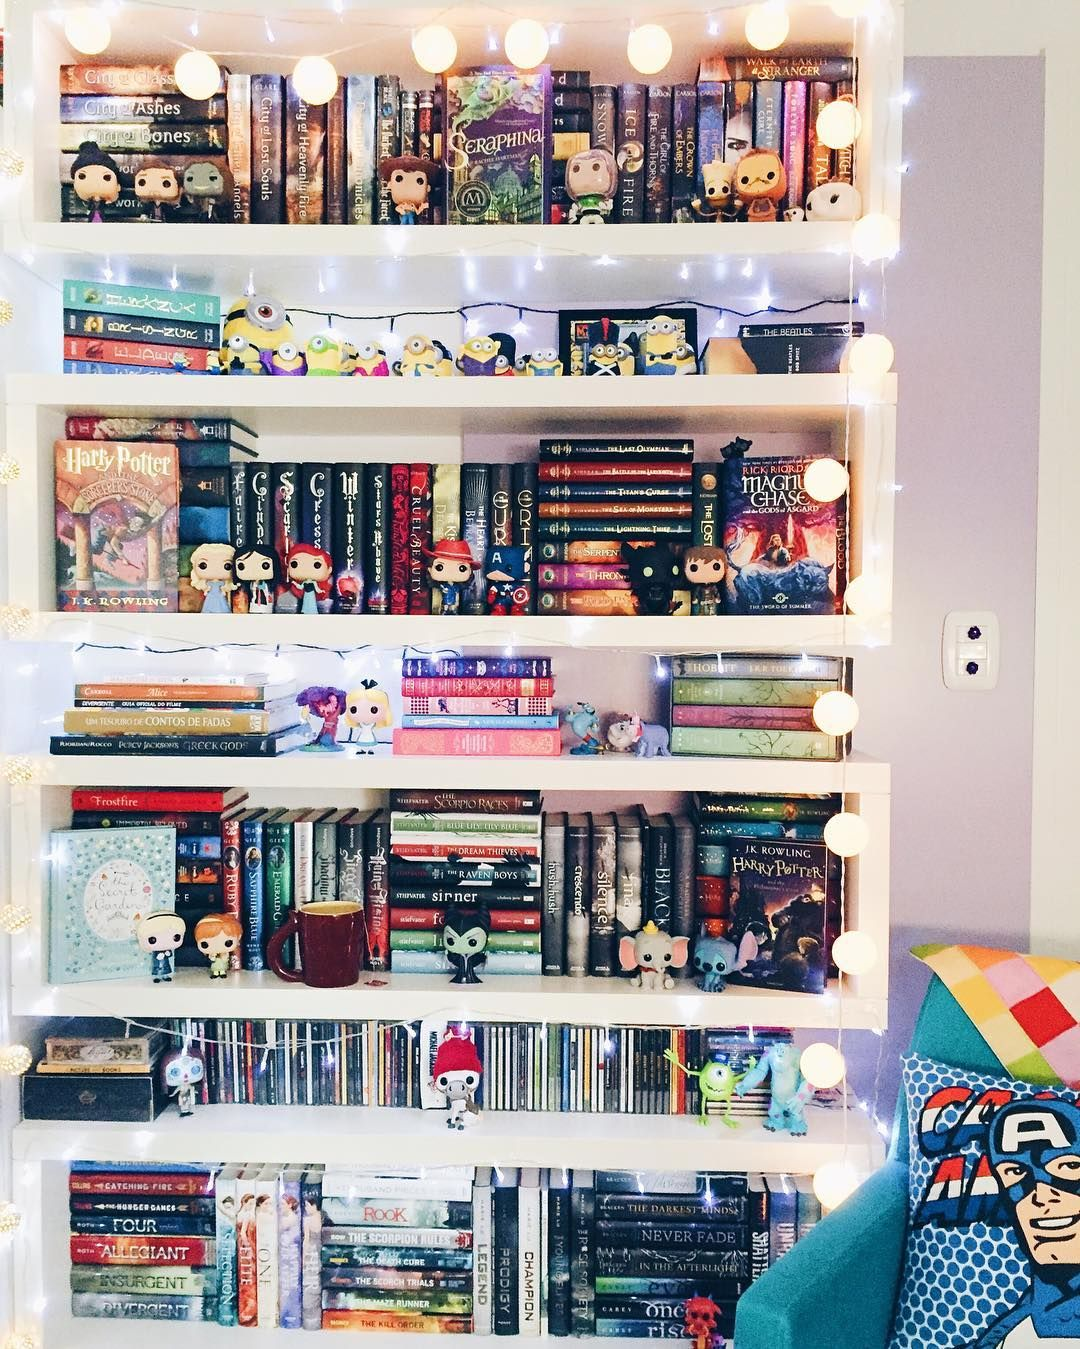 A white book case filled with colorful books and decorations surrounded by string lights.